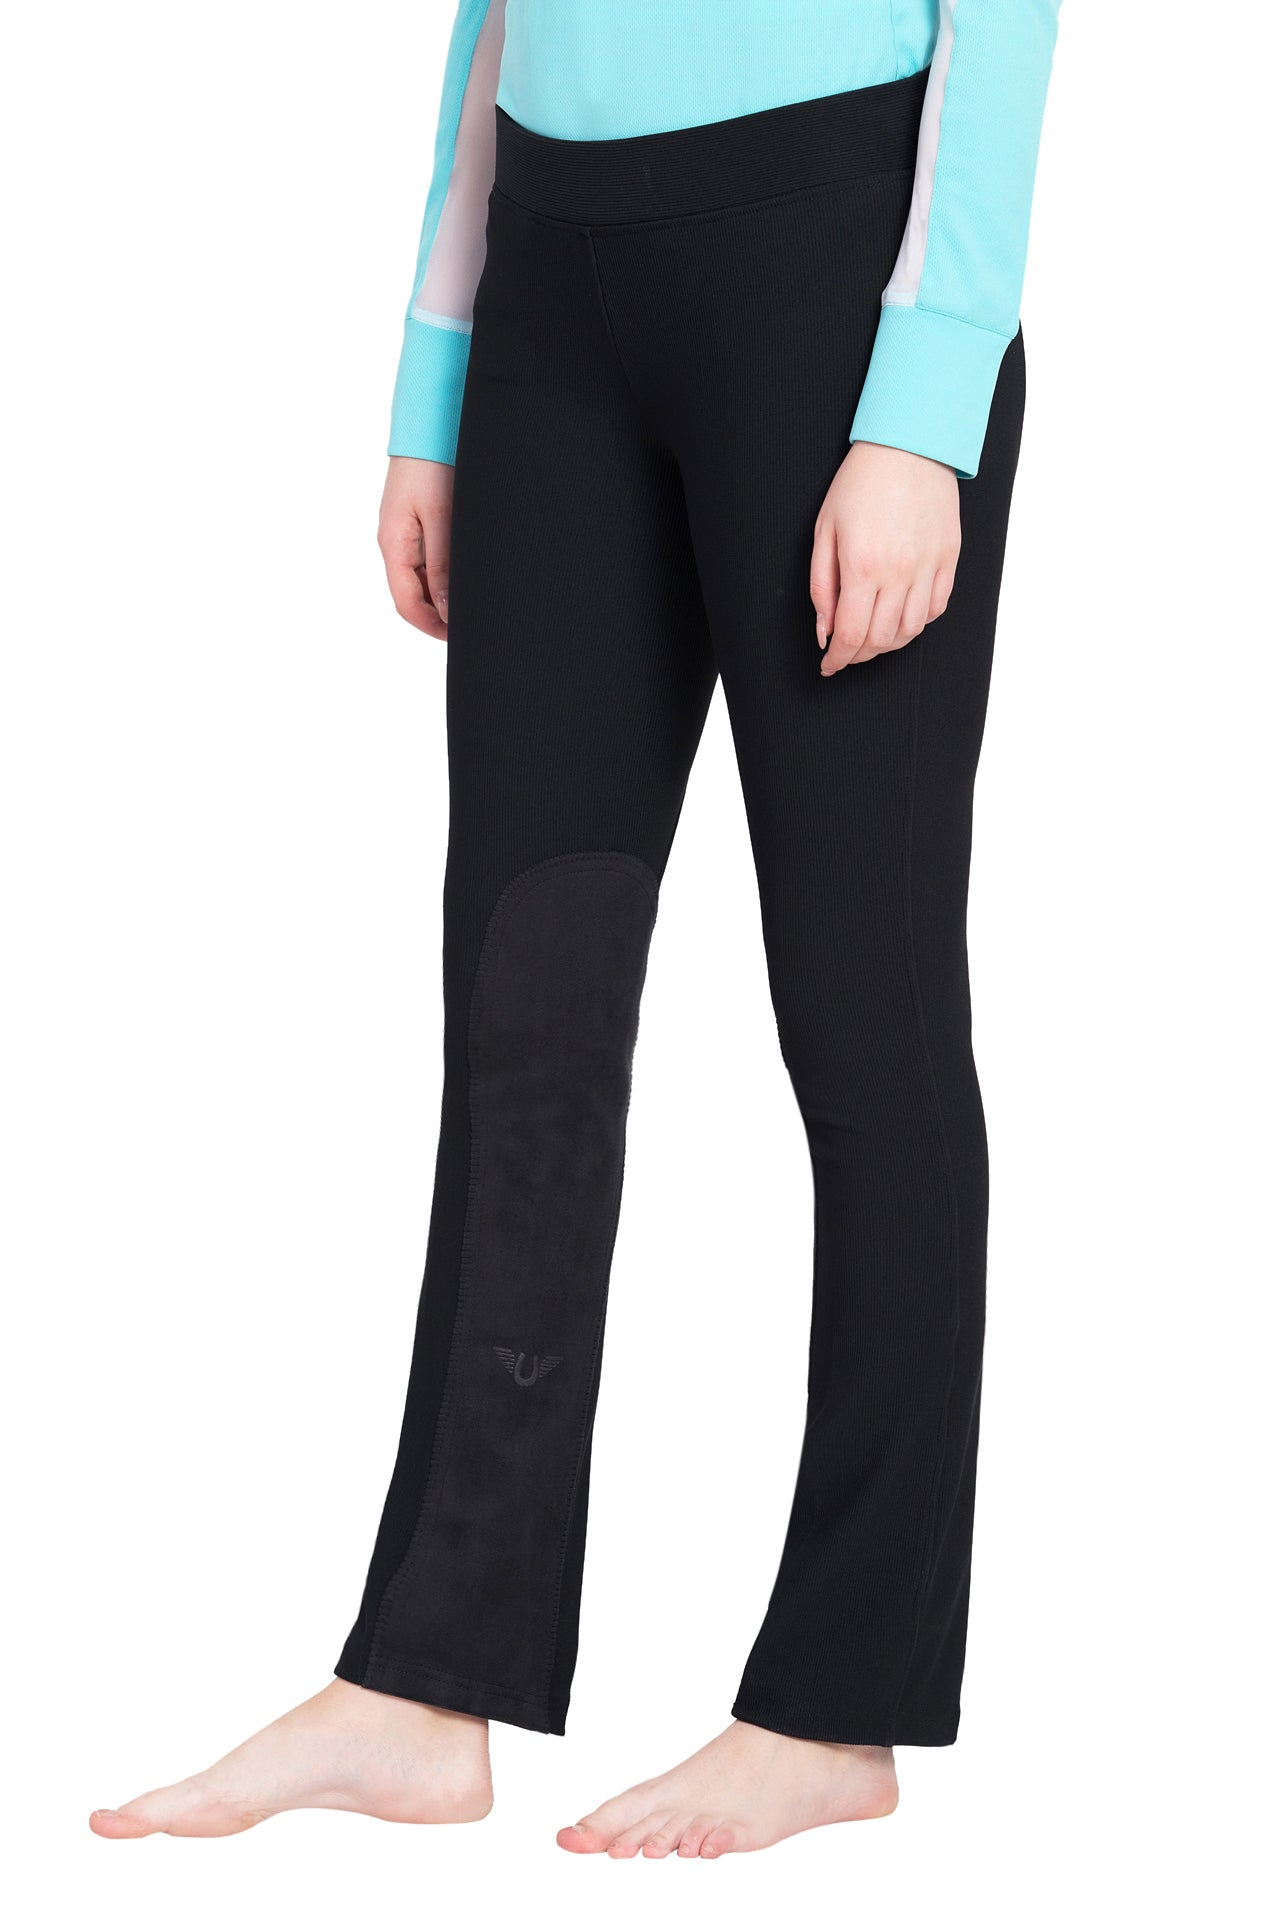 TuffRider Ladies Ribbed Boot Cut Riding Tights_629